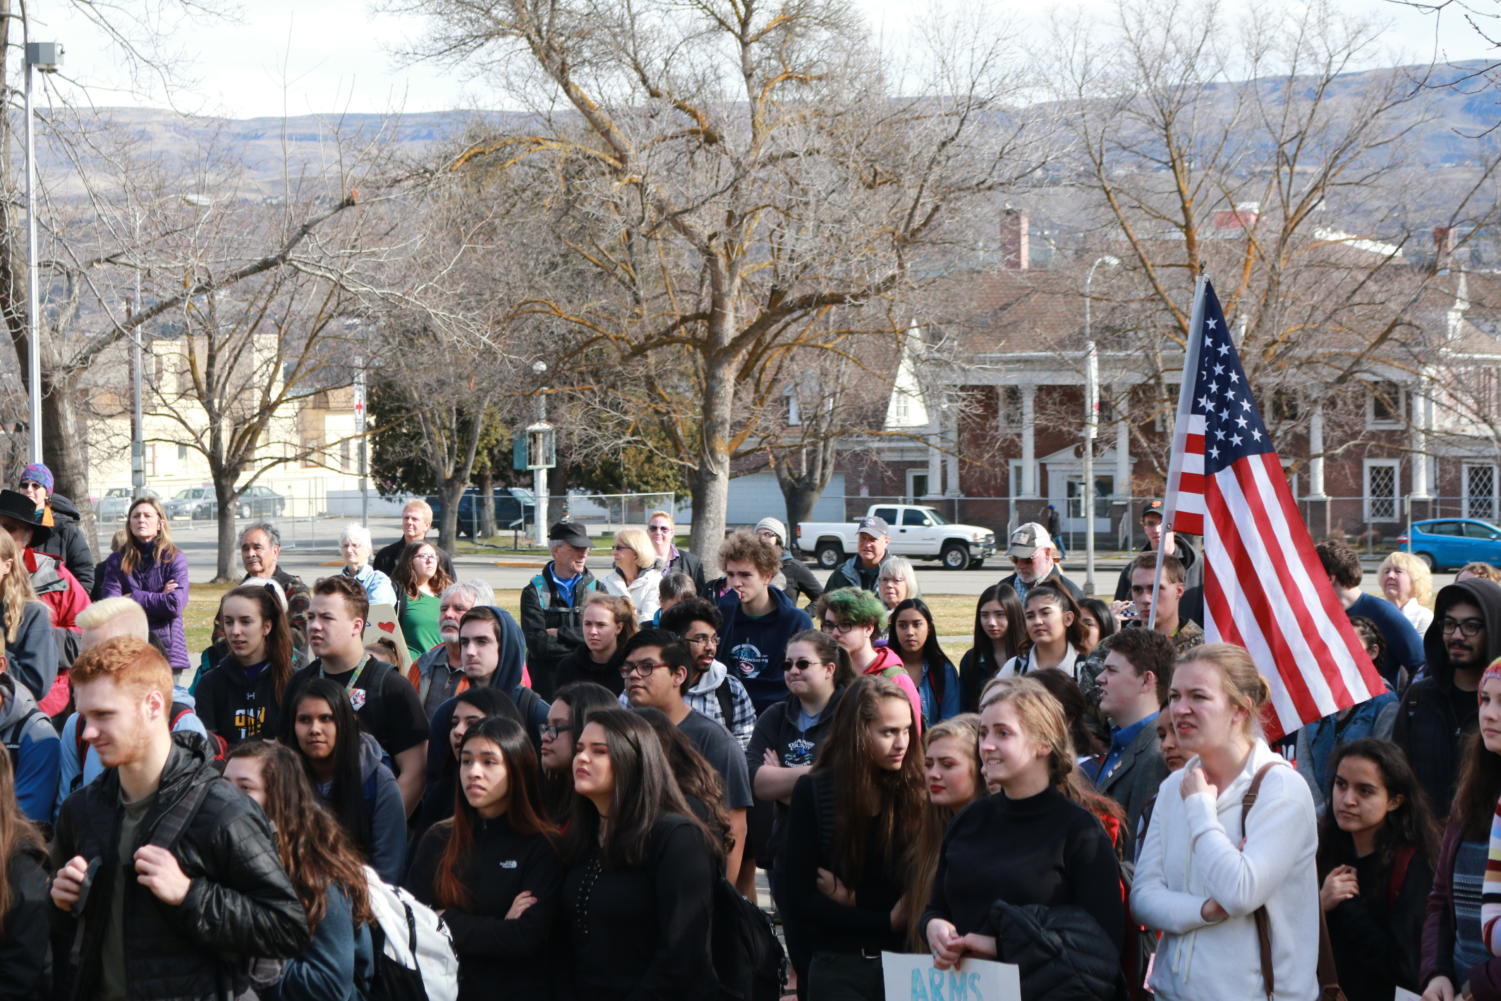 Students gather at Memorial Park to commemorate the seventeen students lost in Parkland, Florida.